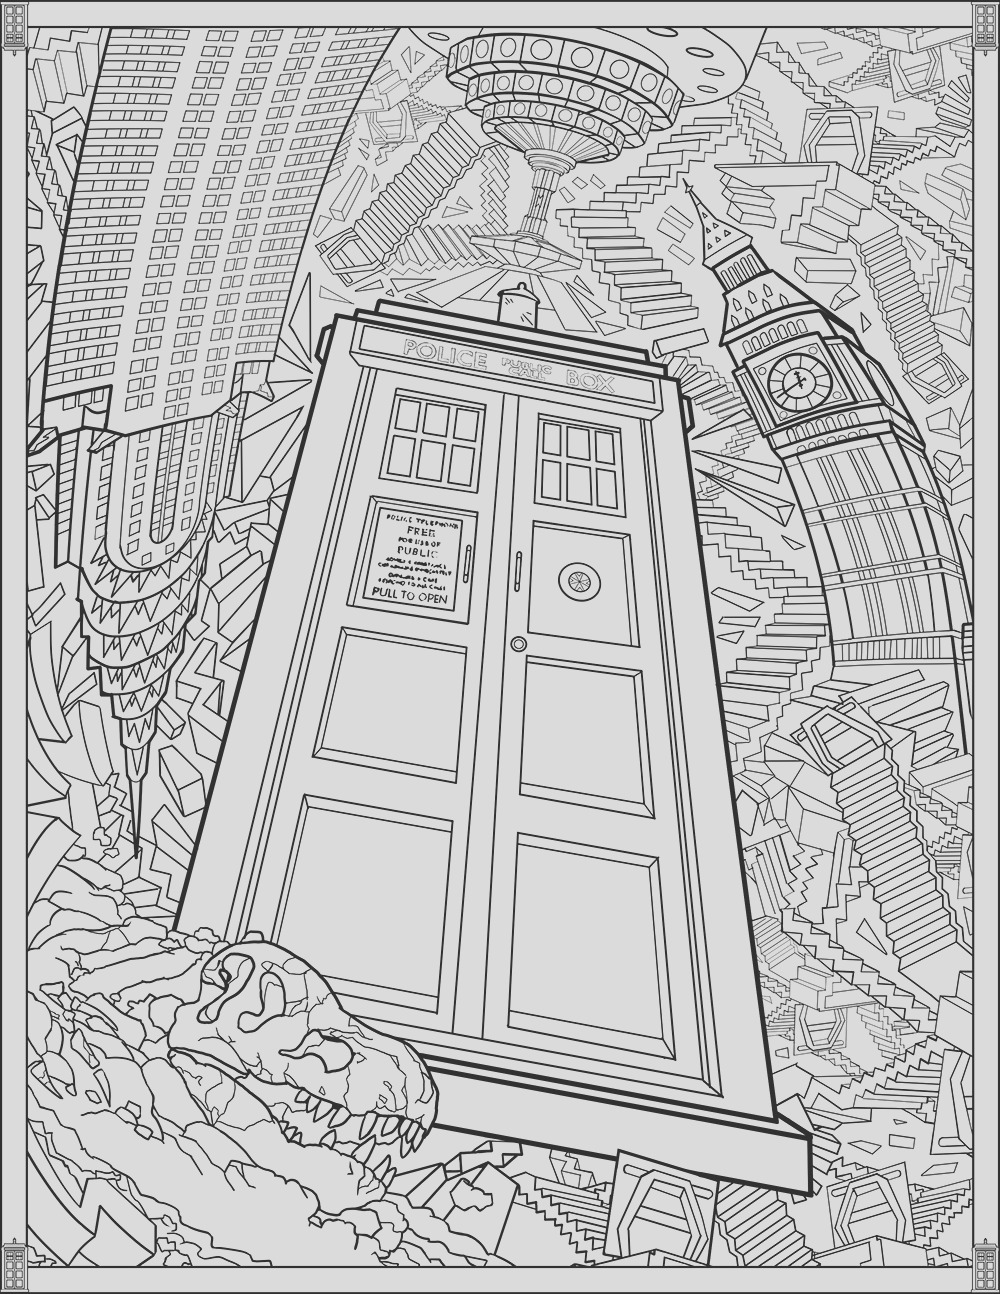 image=tv series Doctor Who Coloring Pages TARDIS 1